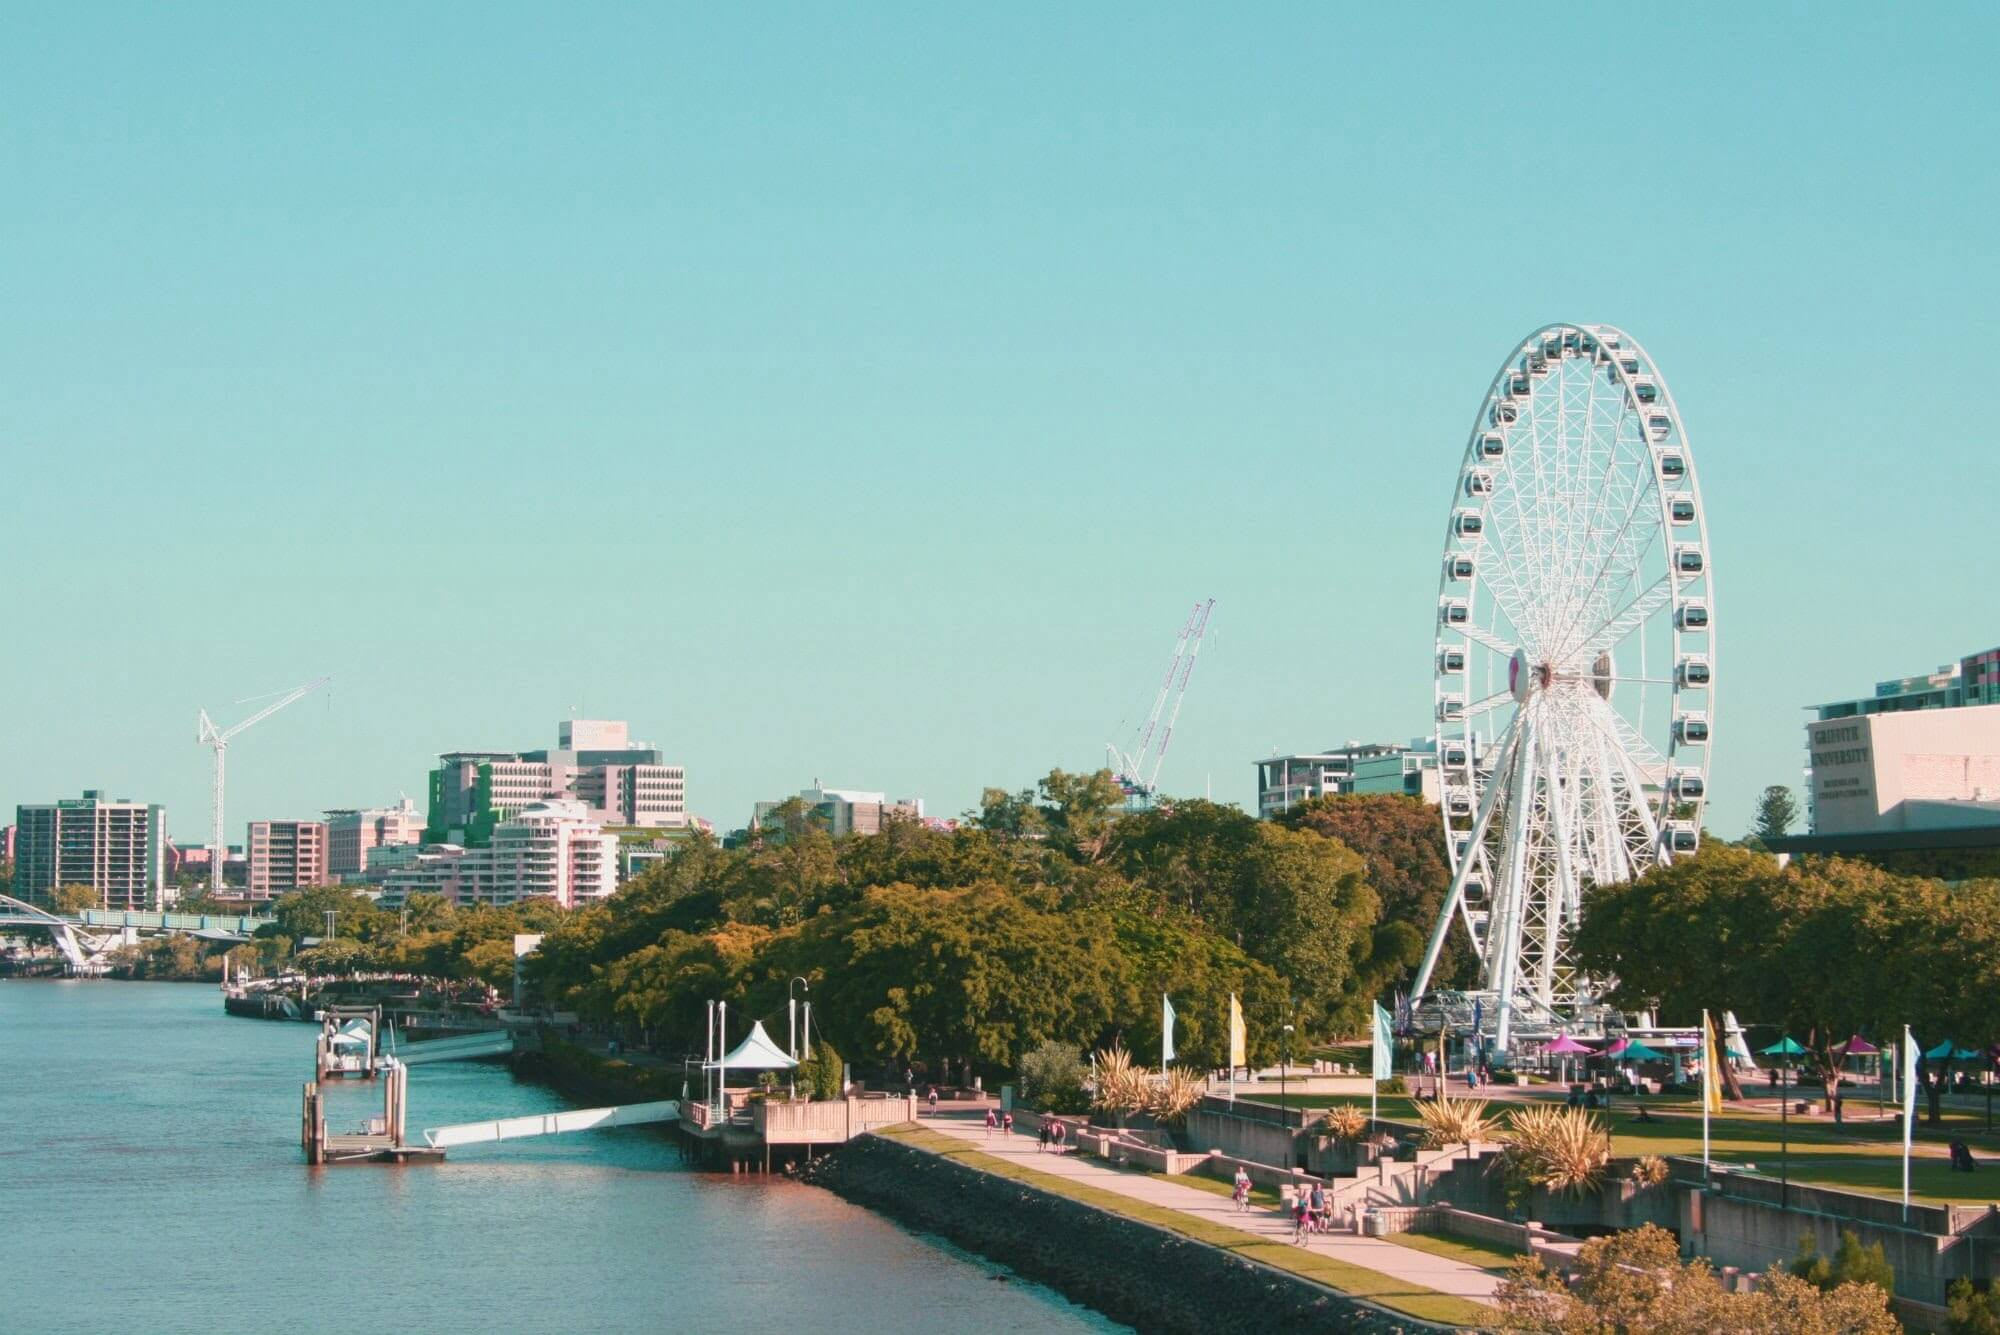 The Wheel of Brisbane in South Bank. Photo by Alice Duffield on Unsplash